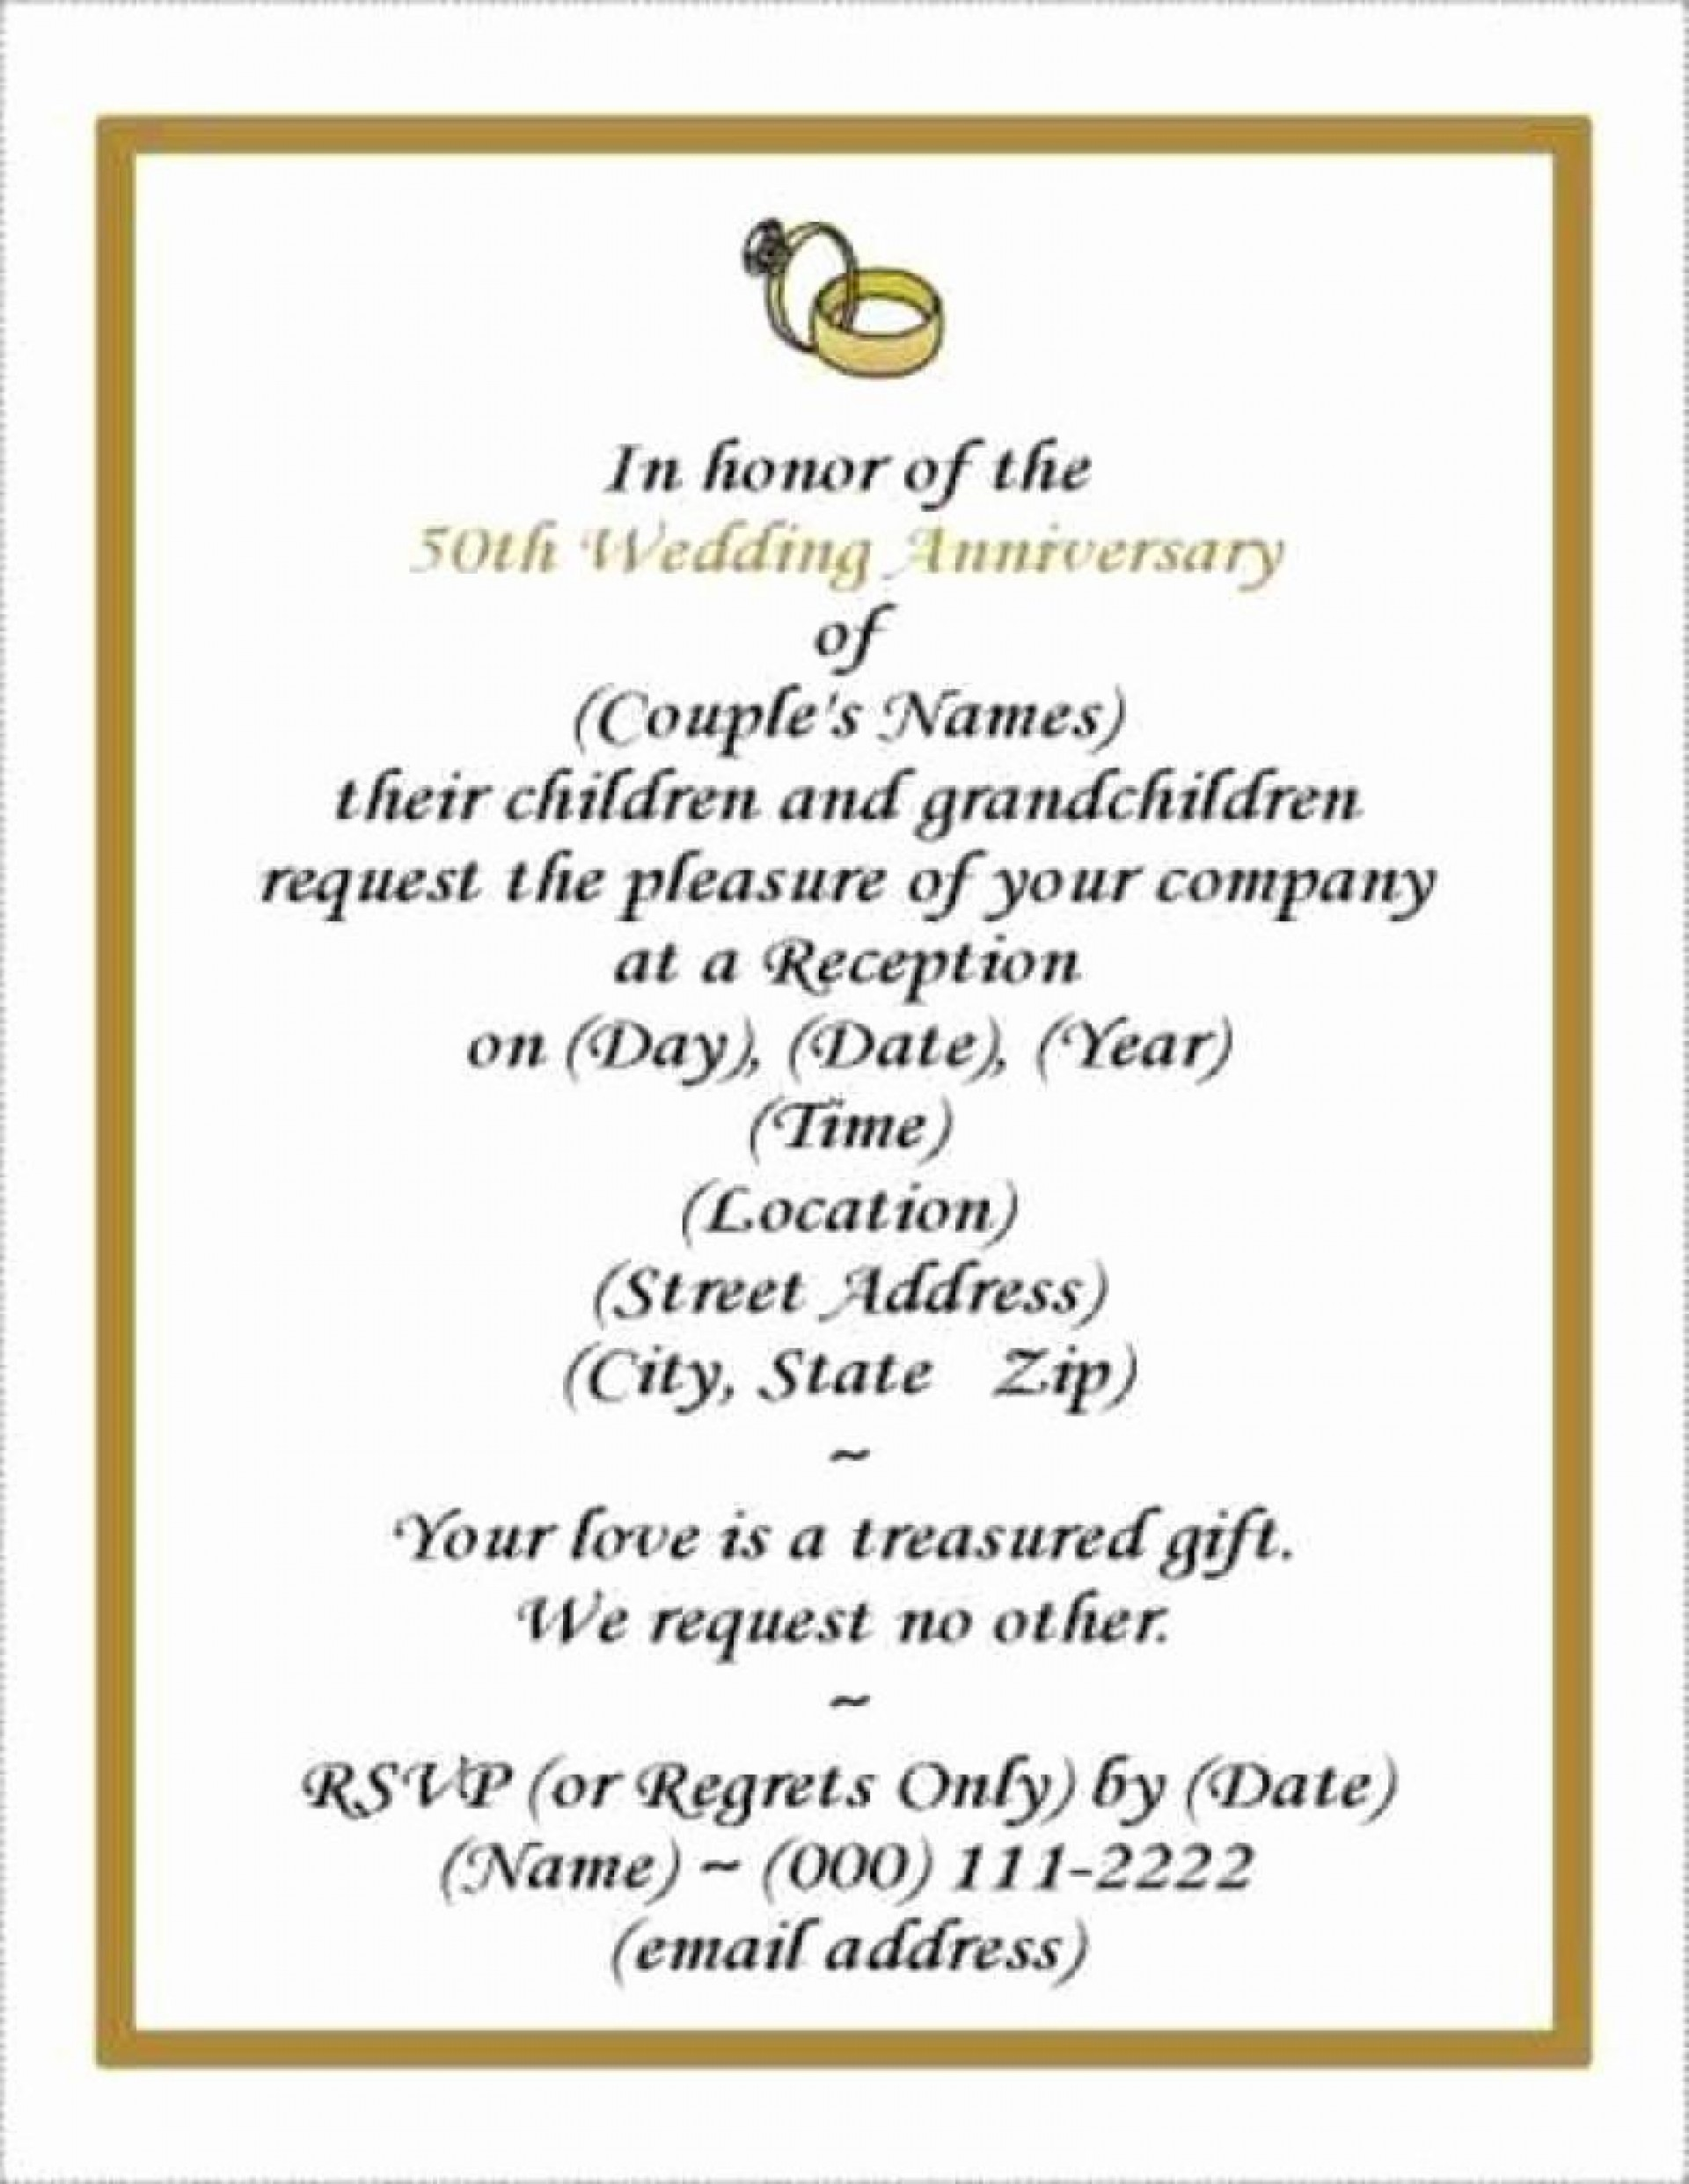 002 Fearsome Free 50th Wedding Anniversary Party Invitation Template High Resolution  Templates1920